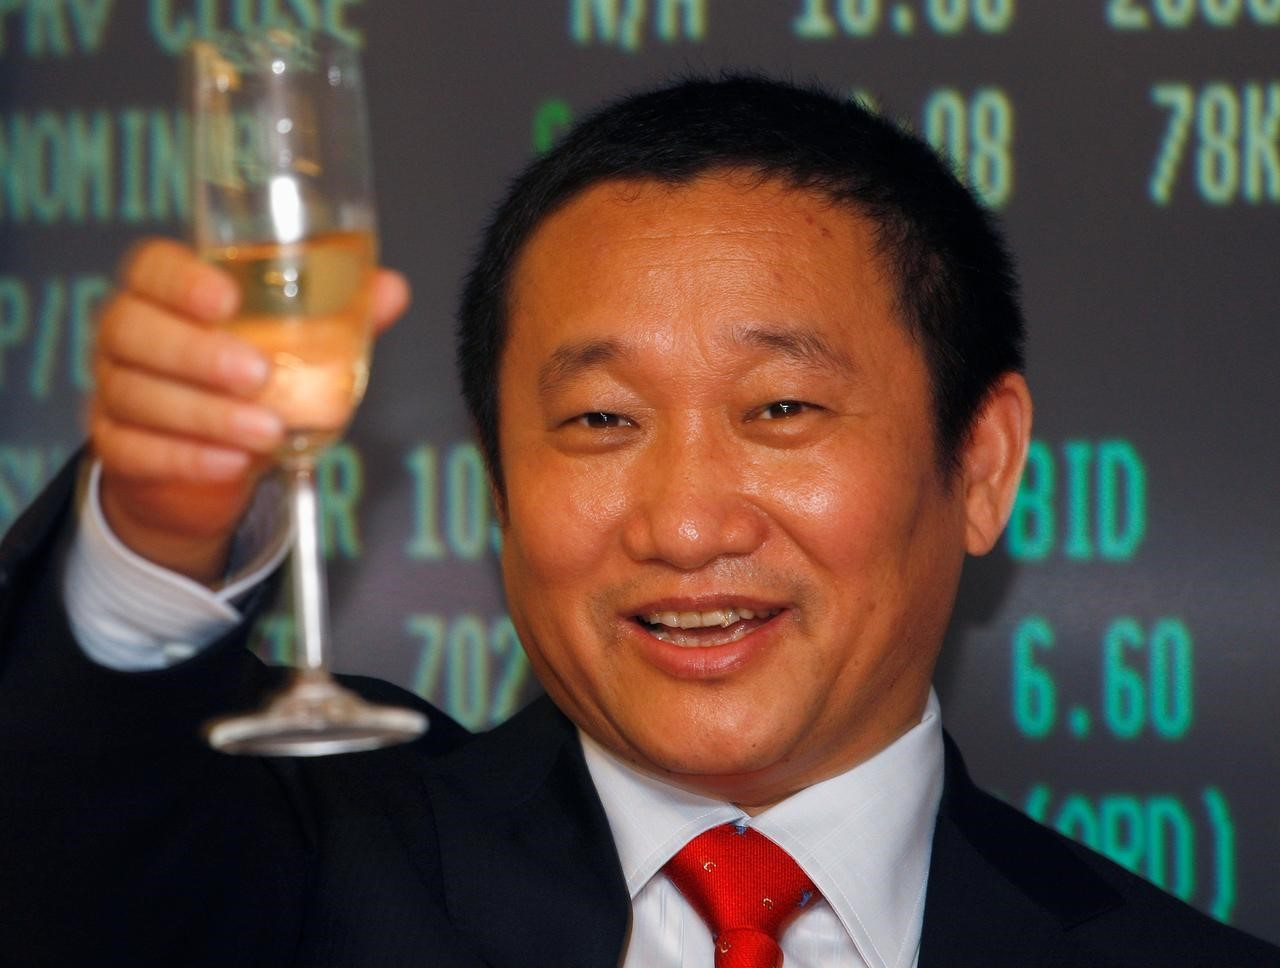 U.S. Issues Warrant for Chinese Billionaire Alleged to Evade Nearly $2 Billion in Tariffs